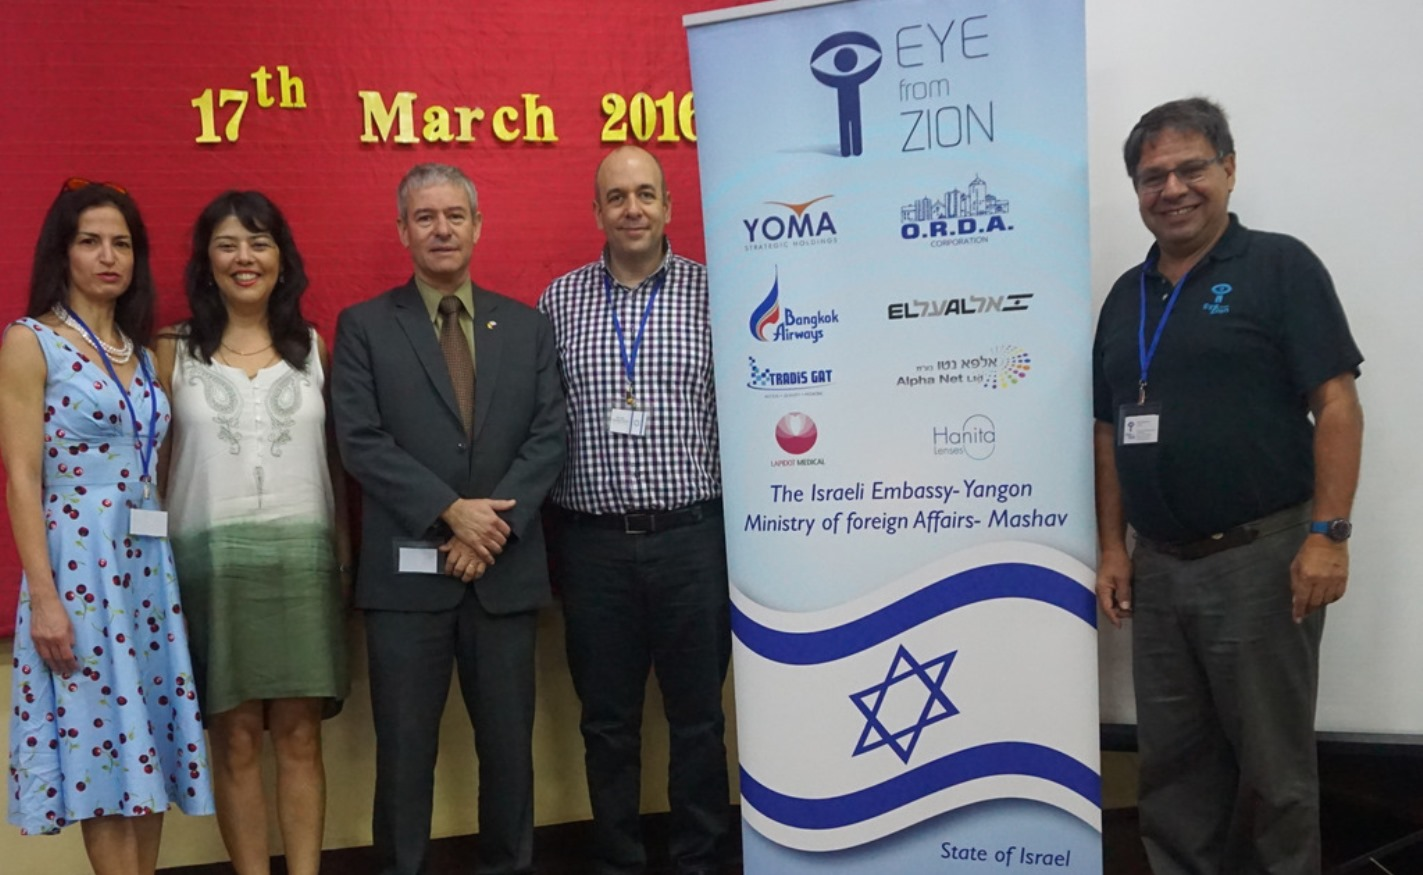 Israeli ophthalmologists Dr. Noa Geffen, Dr. Maya Kalev-Landoy and Dr. Nir Shoham-Hazon with Israeli Ambassador to Myanmar Daniel Zonshine, third from left, and Eye from Zion founder Nati Marcus, far right. Photo: courtesy